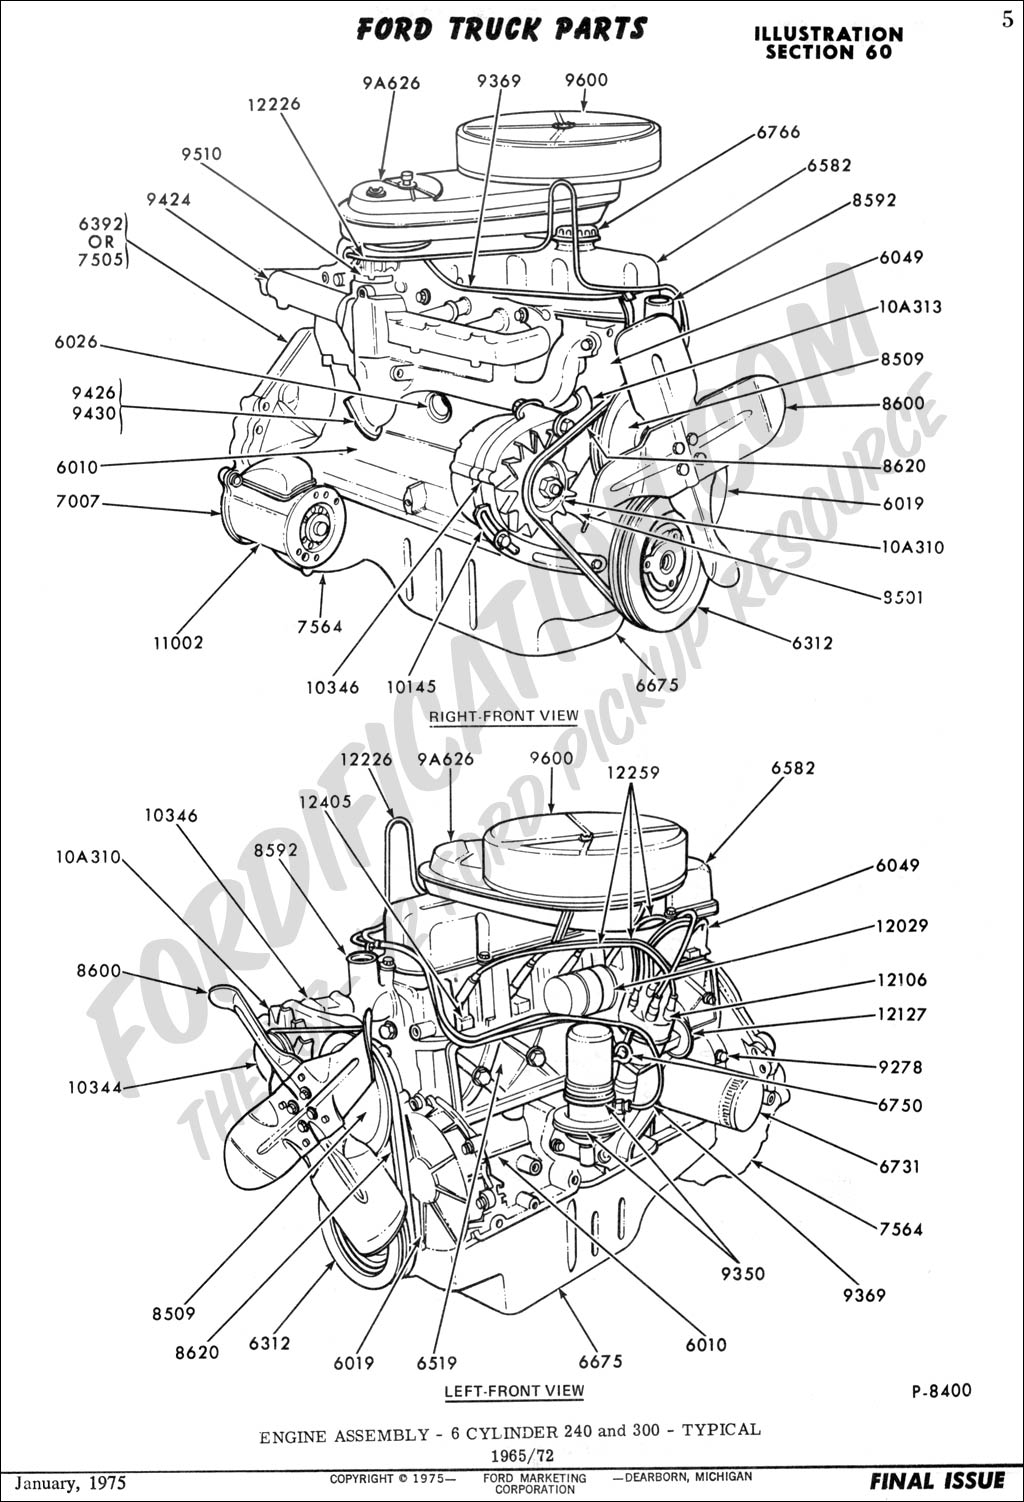 351 Windsor Engine Diagram | Wiring Diagram on